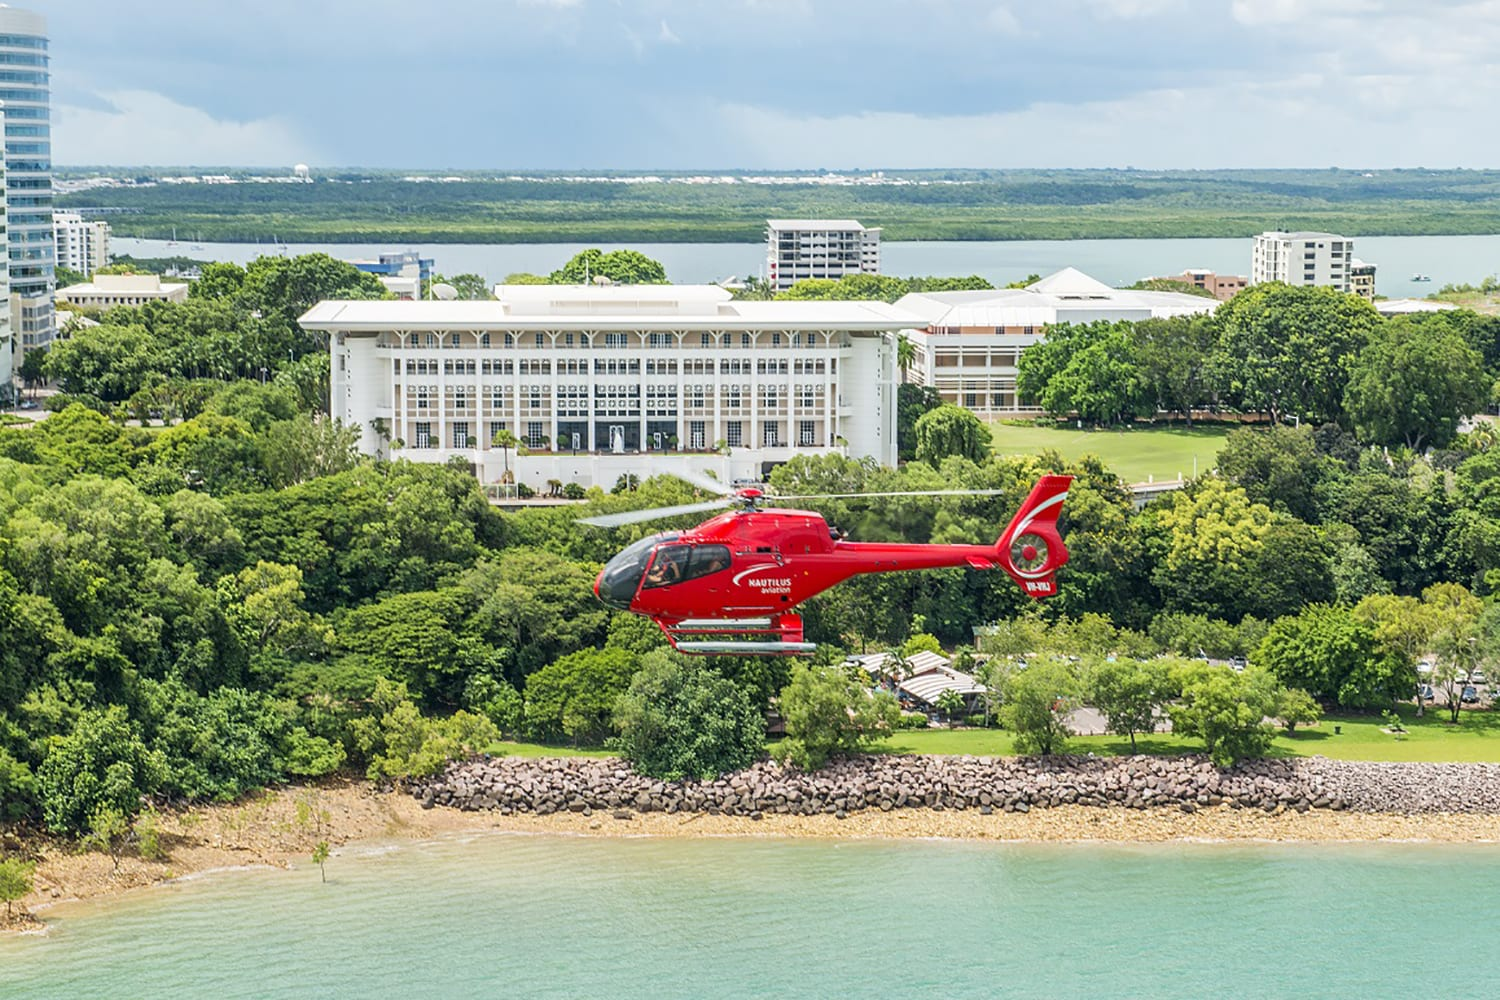 Scenic Darwin Helicopter Flight - 20 Minutes